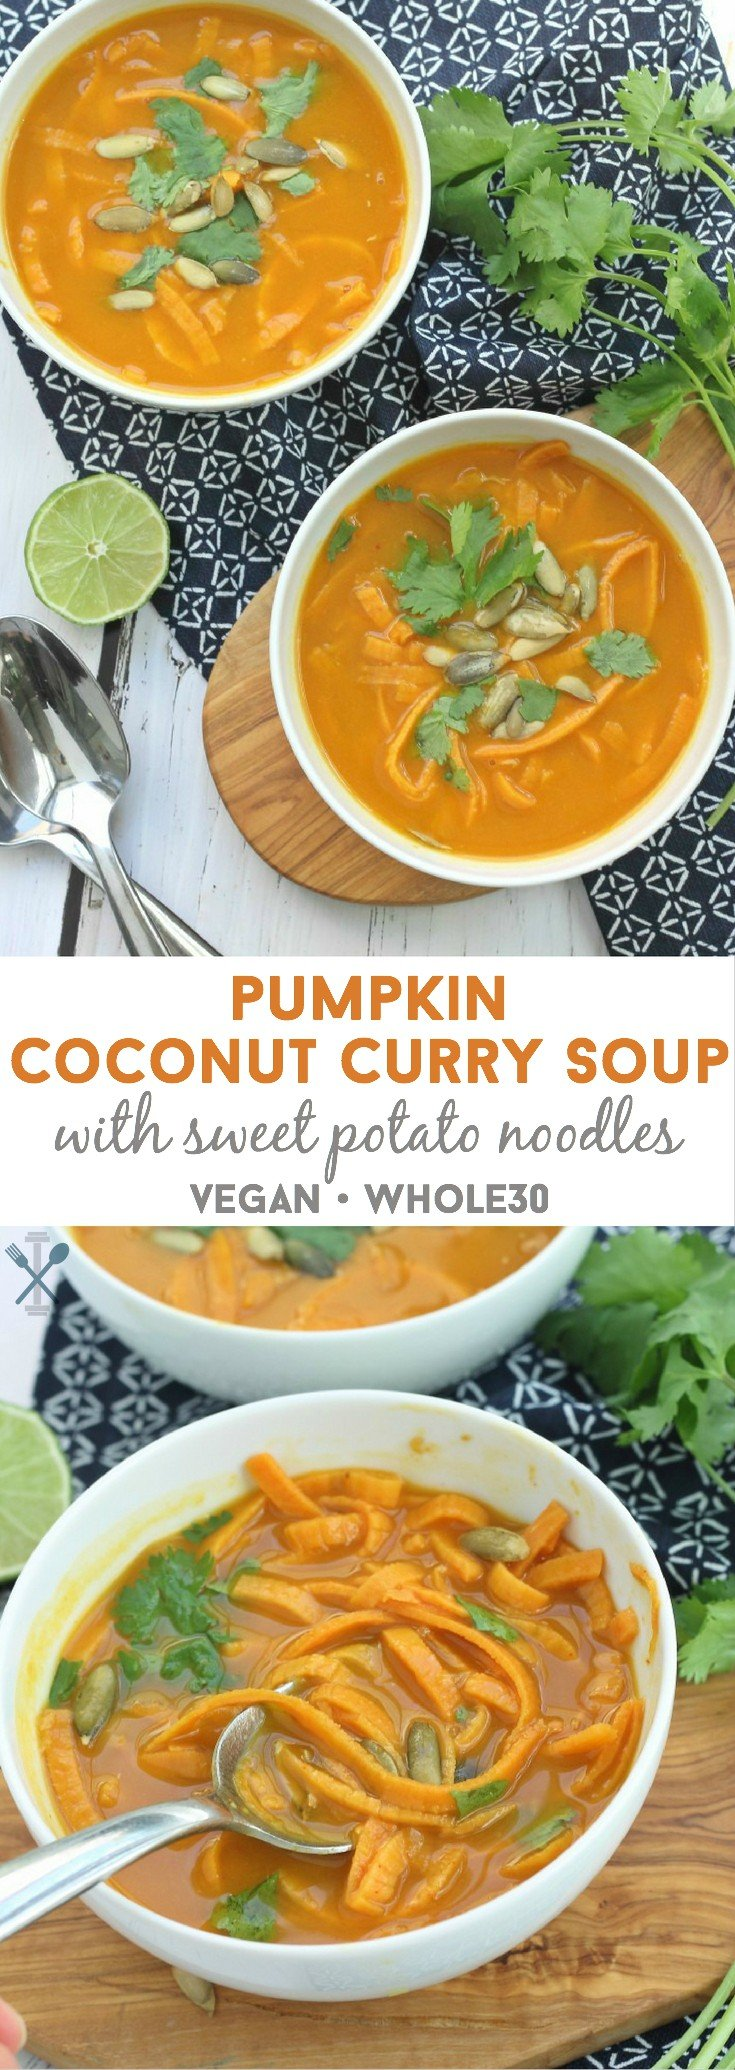 Paleo, Whole30 complaint, Vegan - the perfect soup this fall made with sweet potato noodles and a sweet and savory pumpkin coconut curry